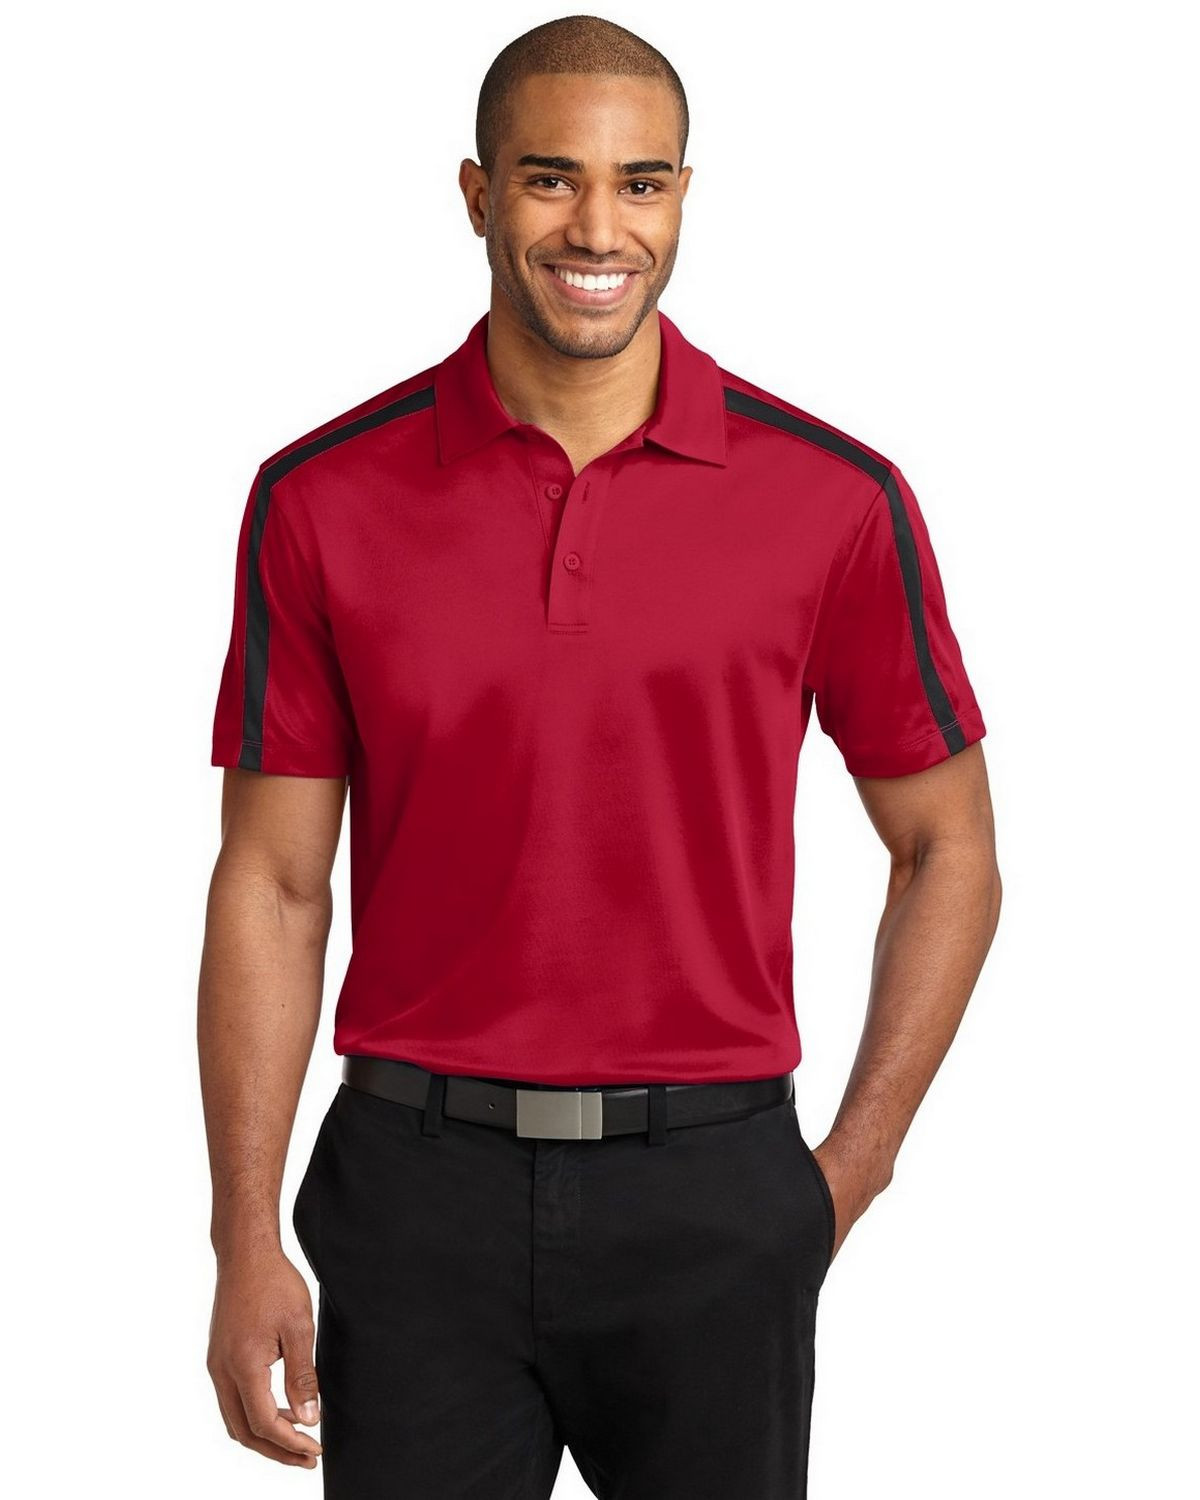 Port Authority K547 Men's Silk Touch Performance Colorblock Stripe Polo - Red/Black - XS #silk